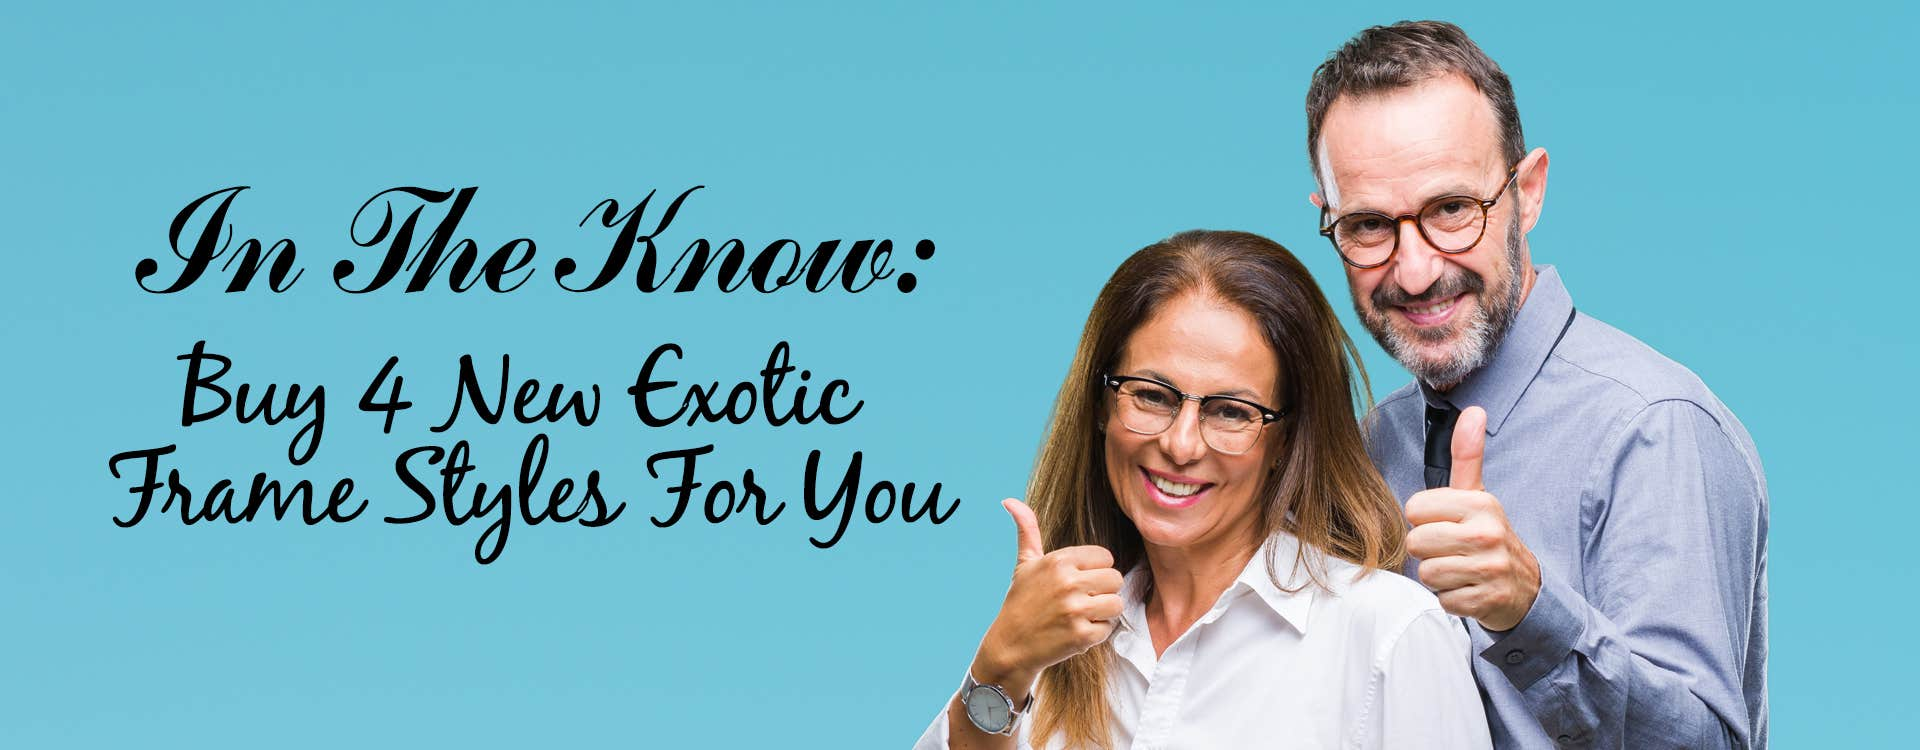 In The Know: The 4 New Exotic Frame Styles For You